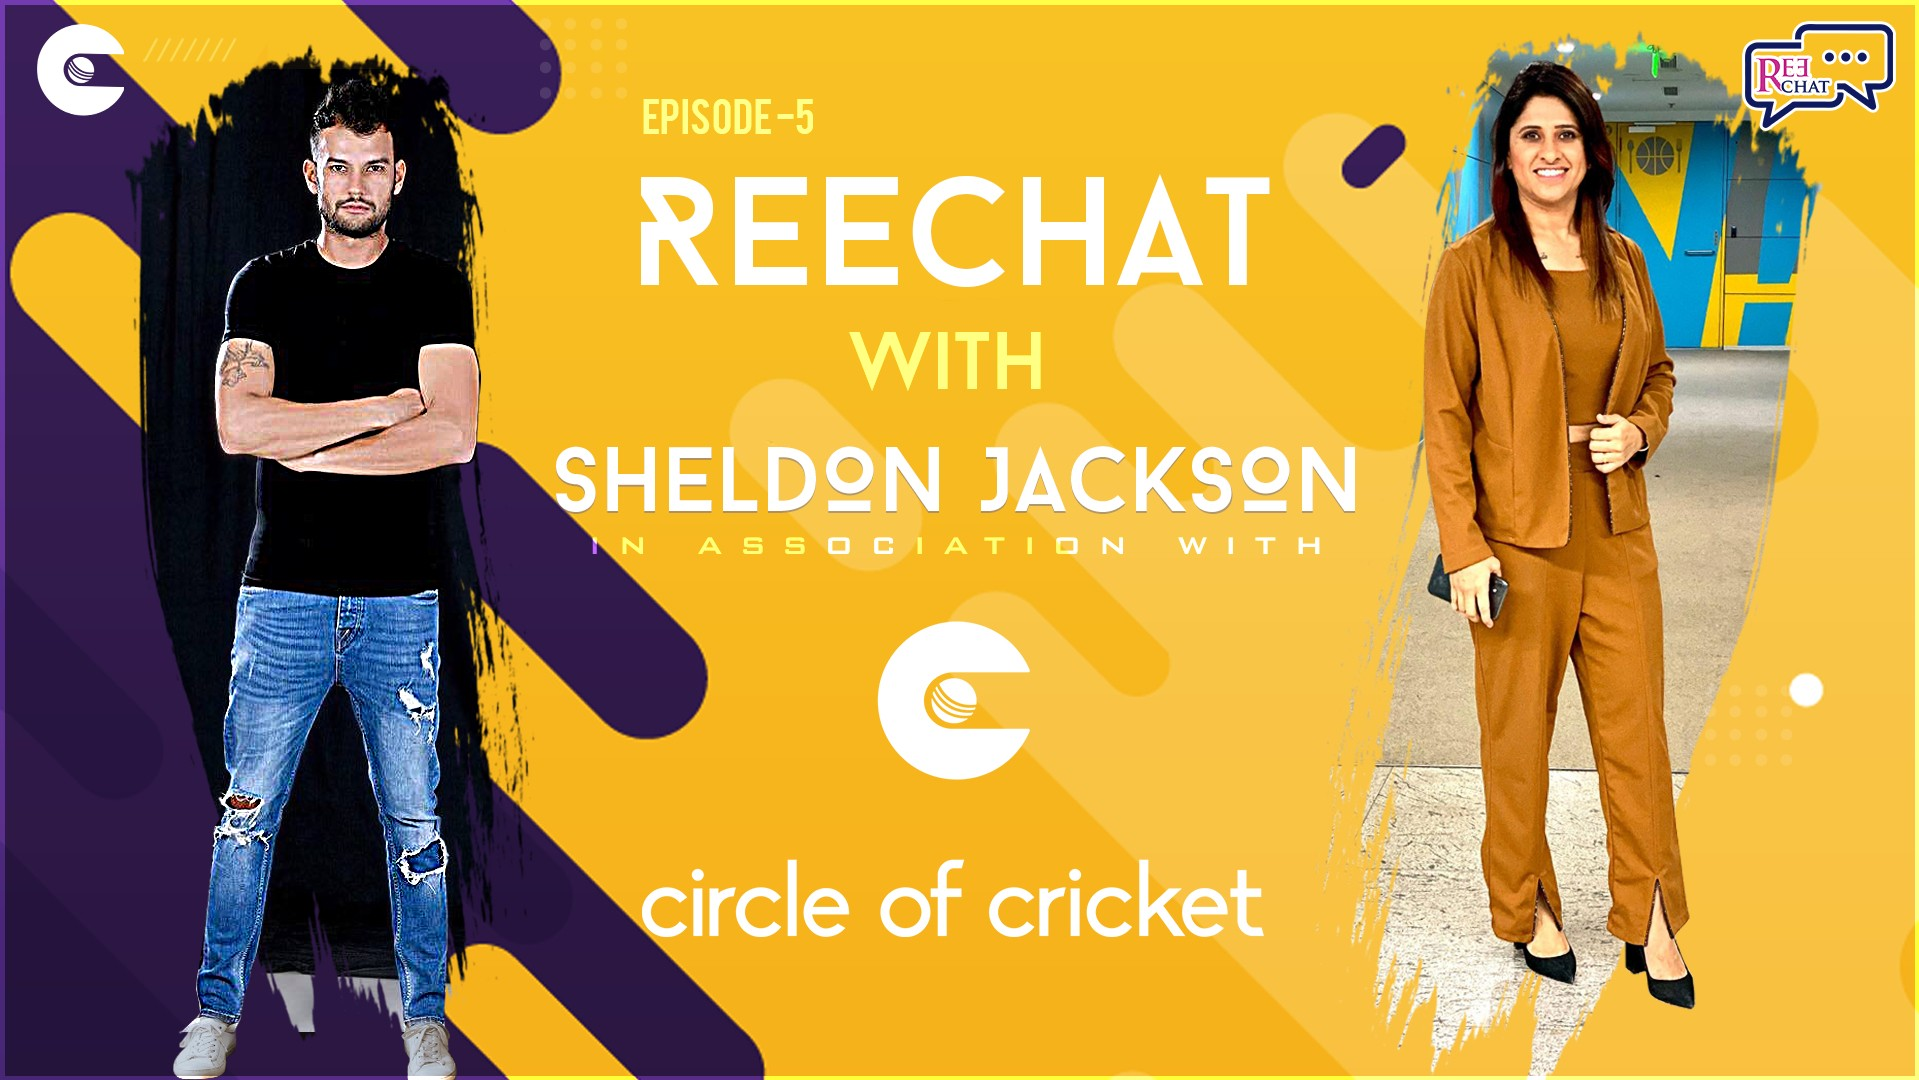 Exclusive: Circle of Cricket presents REECHAT hosted by Reema Malhotra; Episode.5 ft. Sheldon Jackson